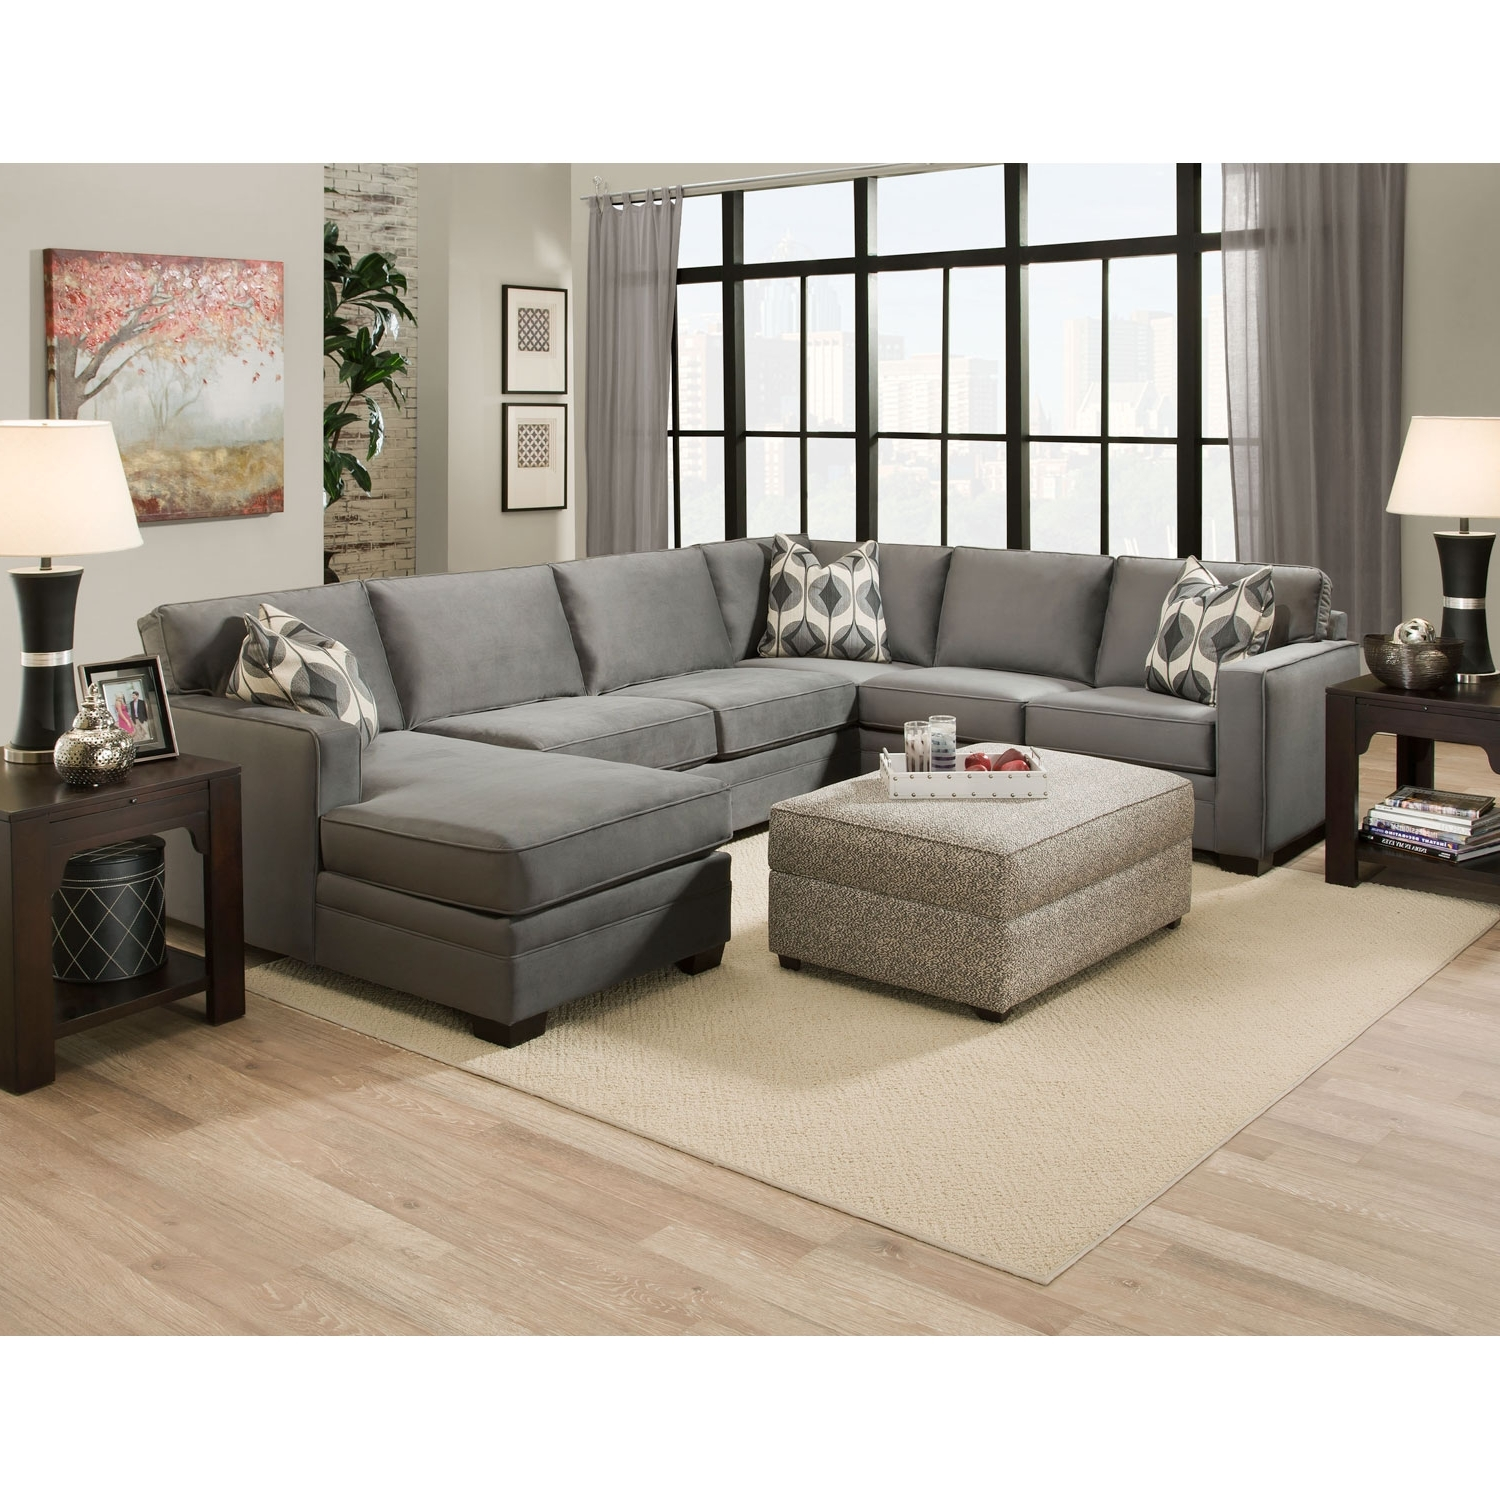 Gray U Shaped Sectionals Pertaining To Popular Gray Extra Large U Shaped Sectional Sofa With Chaise And Accent (View 13 of 20)